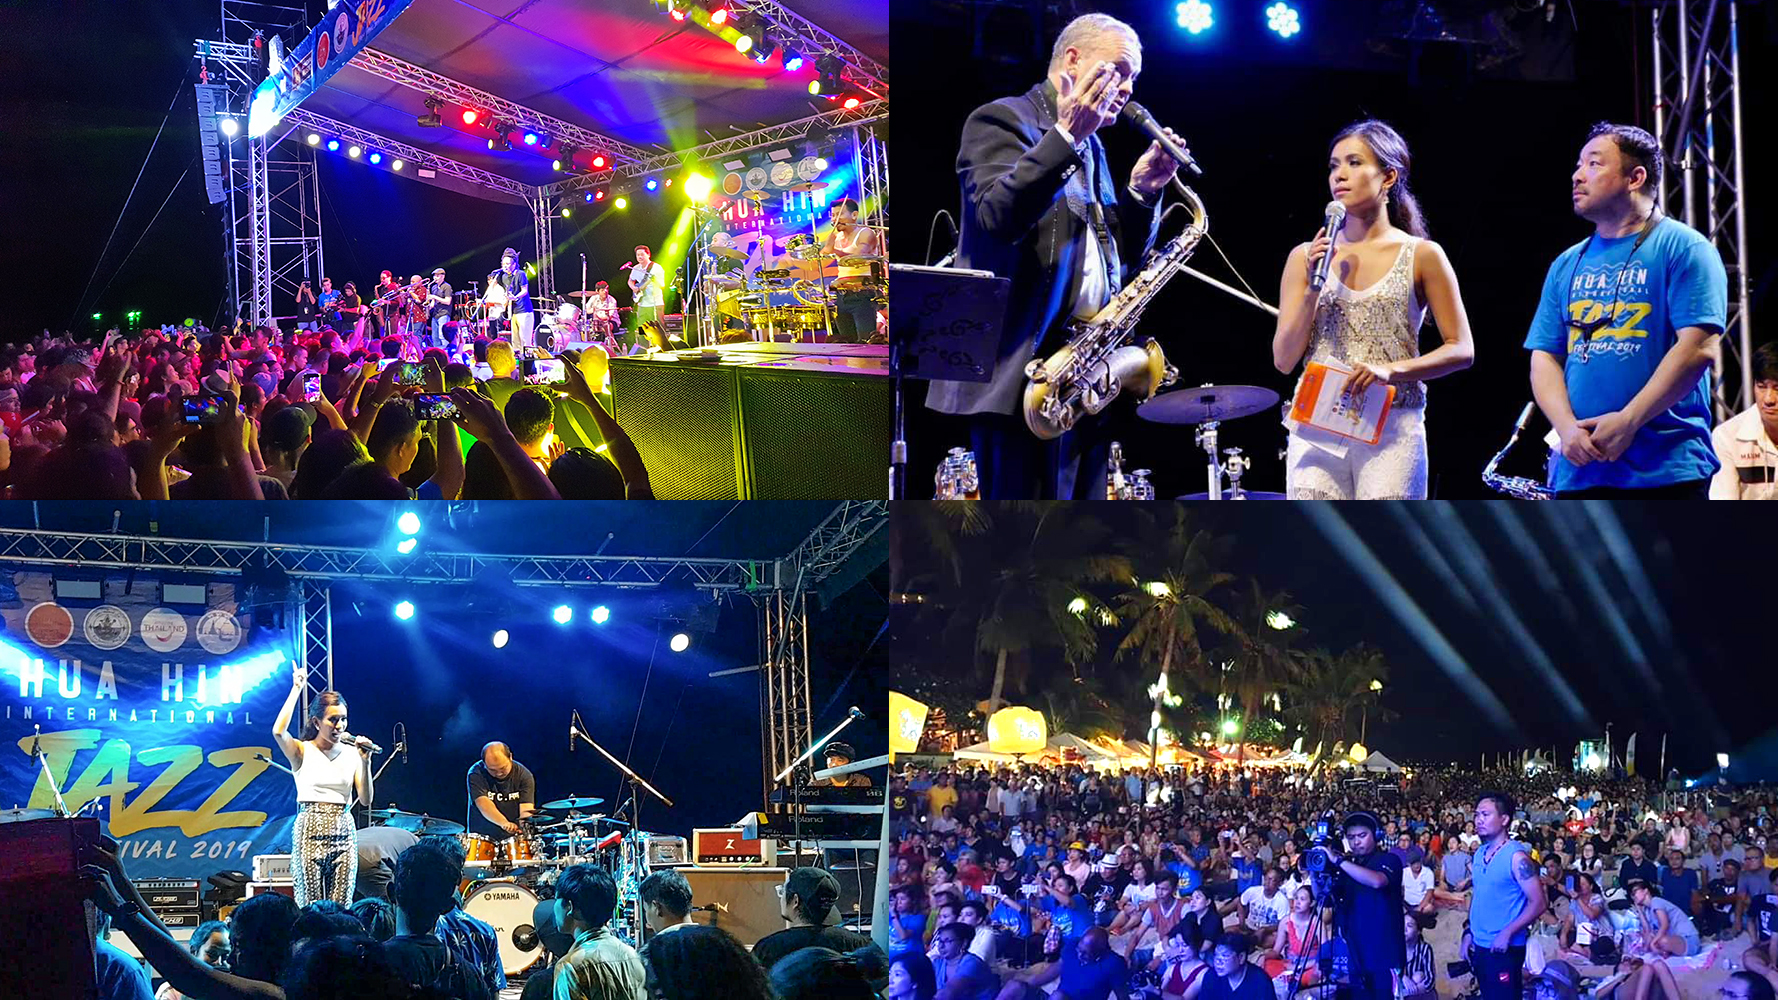 International Jazz Festival Huahin